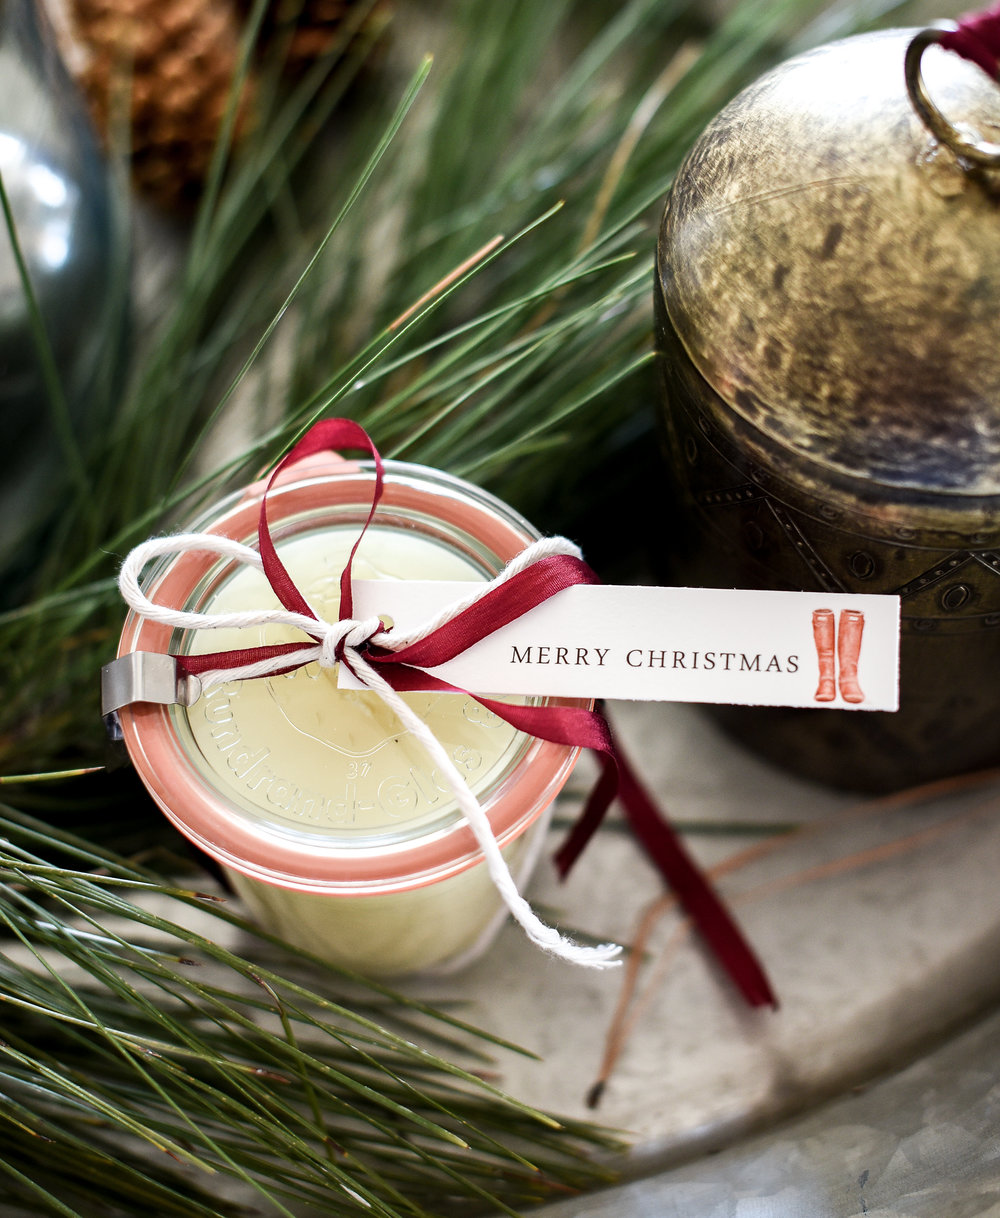 Homemade candles are a great Christmas gift from boxwoodavenue.com with free printable gift tags made with essential oils and beeswax!